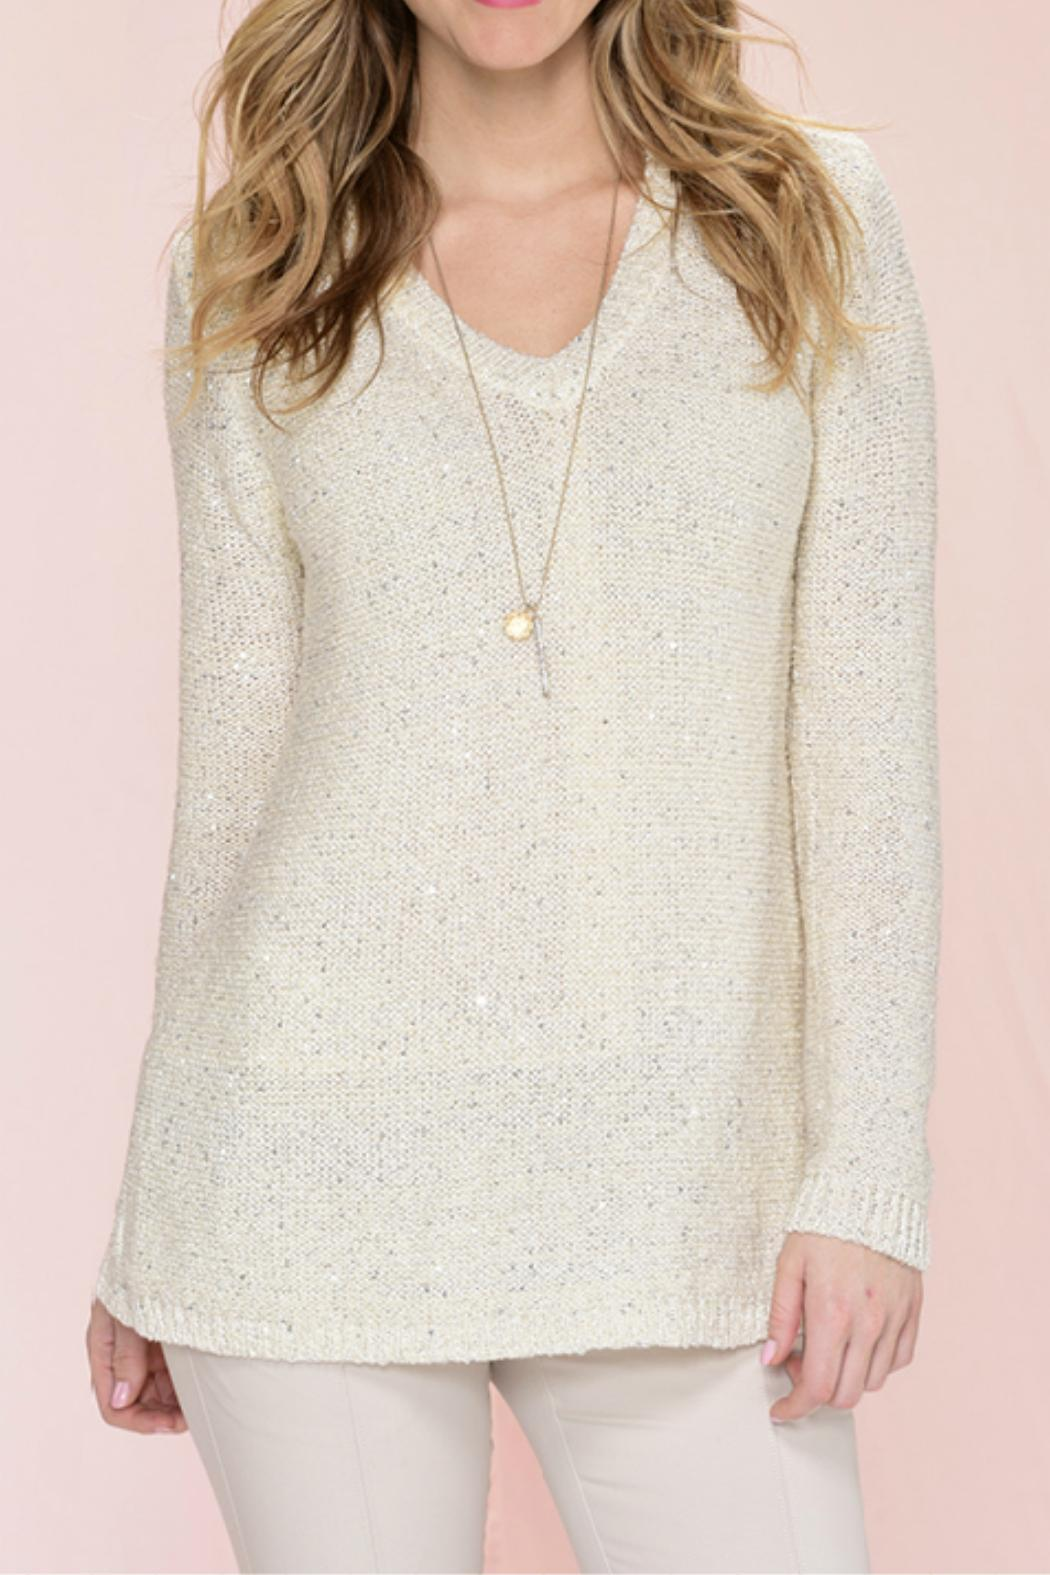 Charlie Paige Sequinned Knit Sweater - Front Full Image